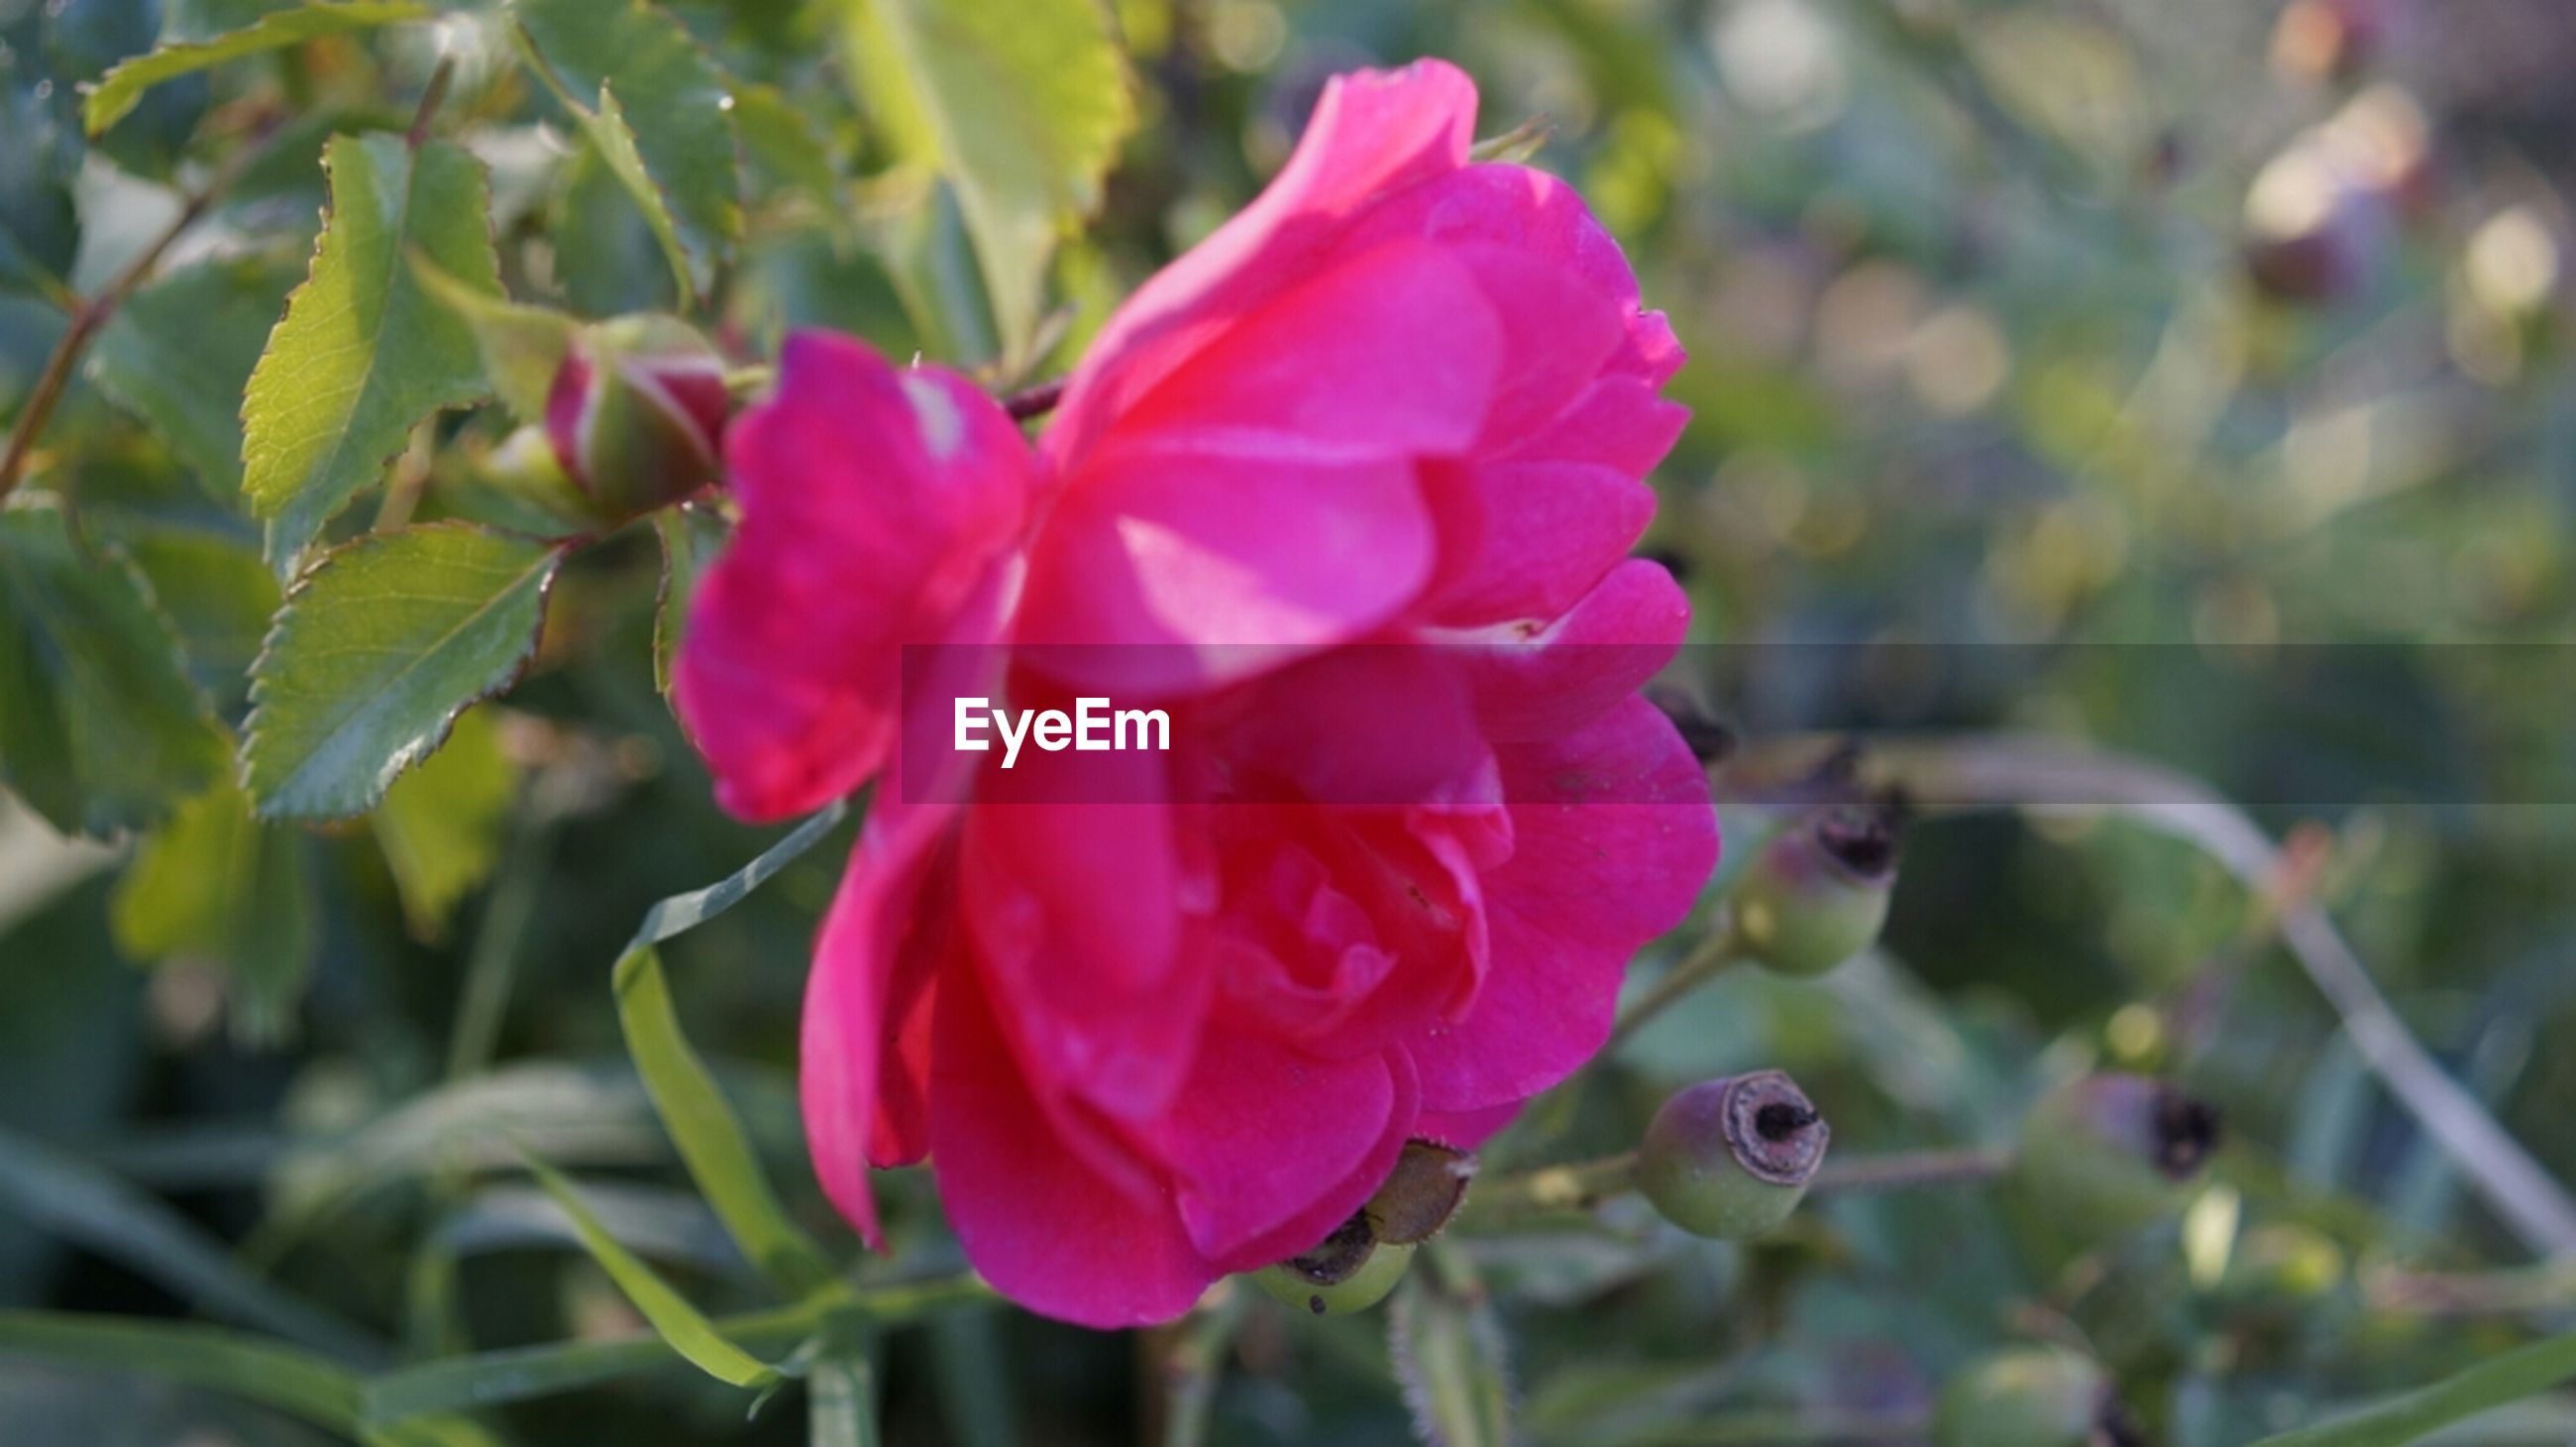 flower, freshness, petal, fragility, pink color, growth, close-up, focus on foreground, beauty in nature, flower head, plant, nature, blooming, leaf, rose - flower, bud, in bloom, pink, day, outdoors